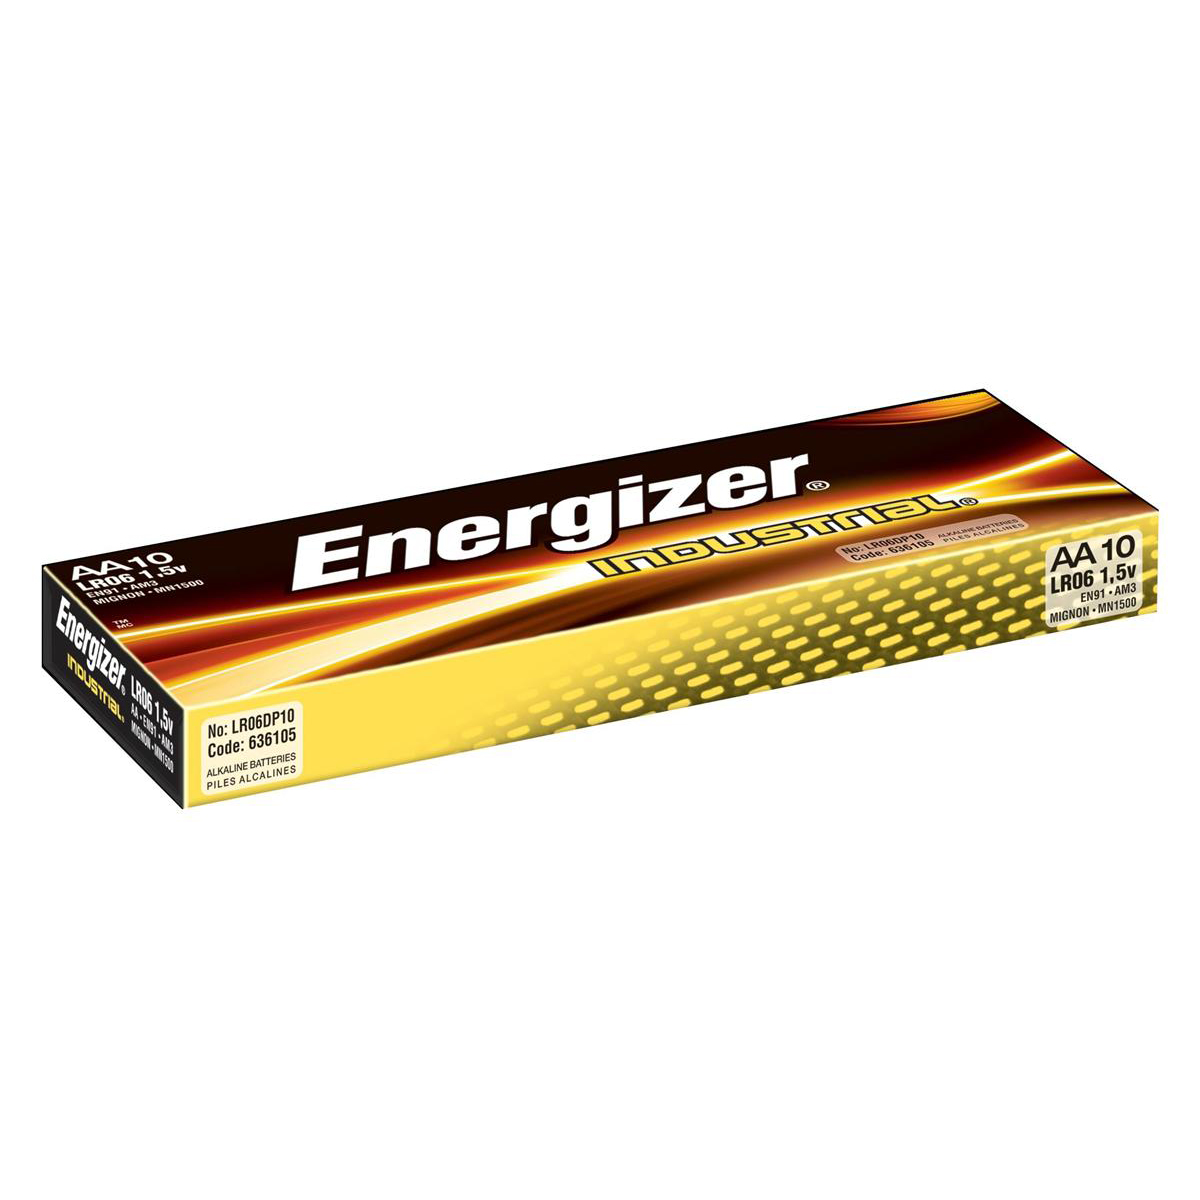 AA Energizer Industrial Battery Long Life LR6 1.5V AA Ref 636105 Pack 10